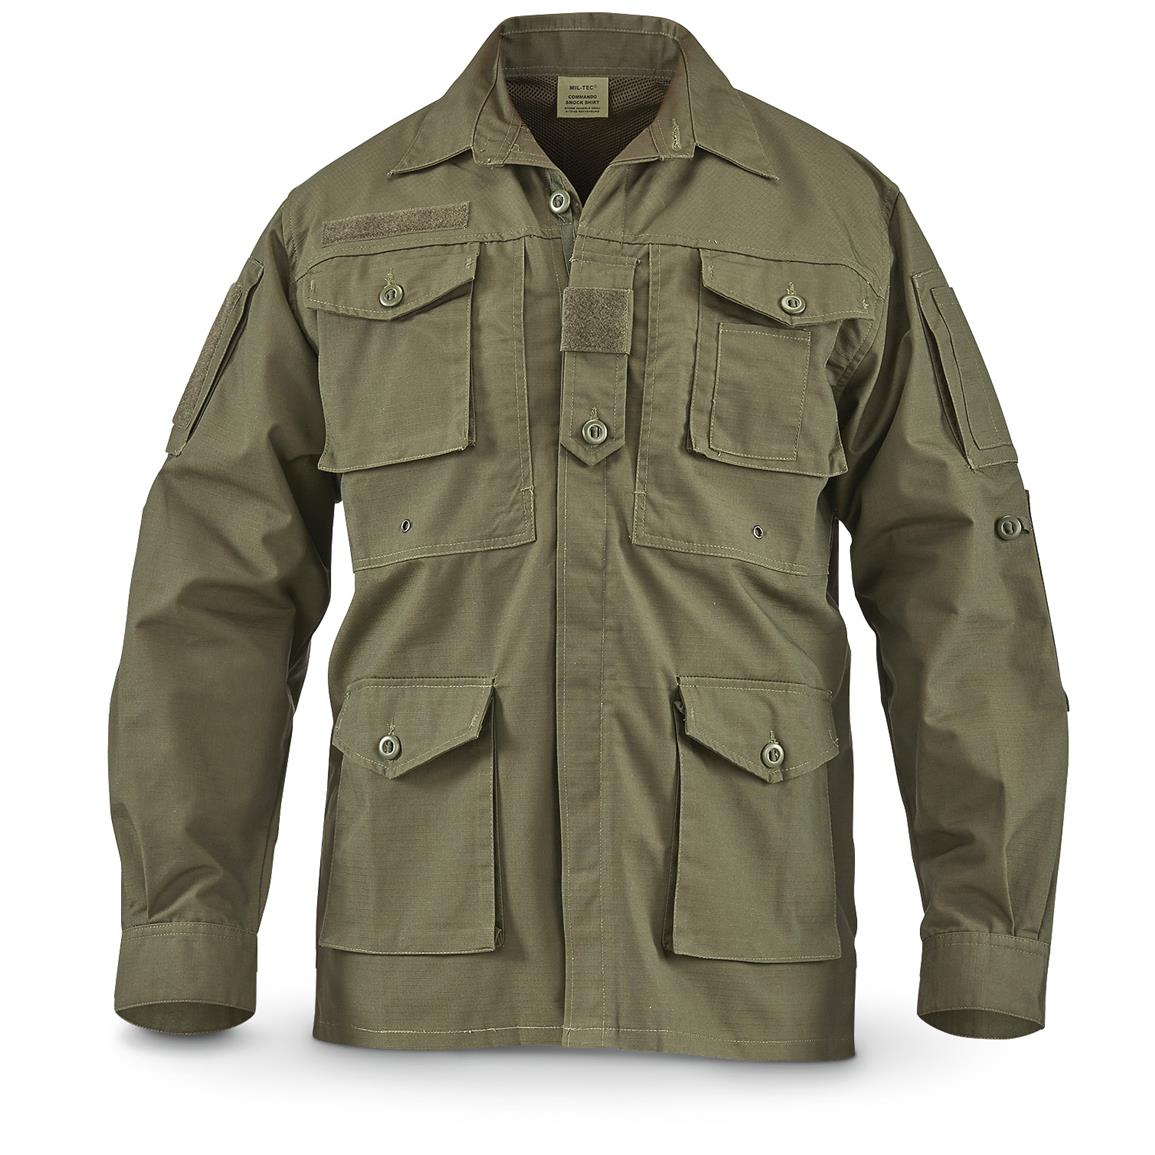 Men's Mil-Tec Commando Jacket, Padded Elbows, Olive Drab